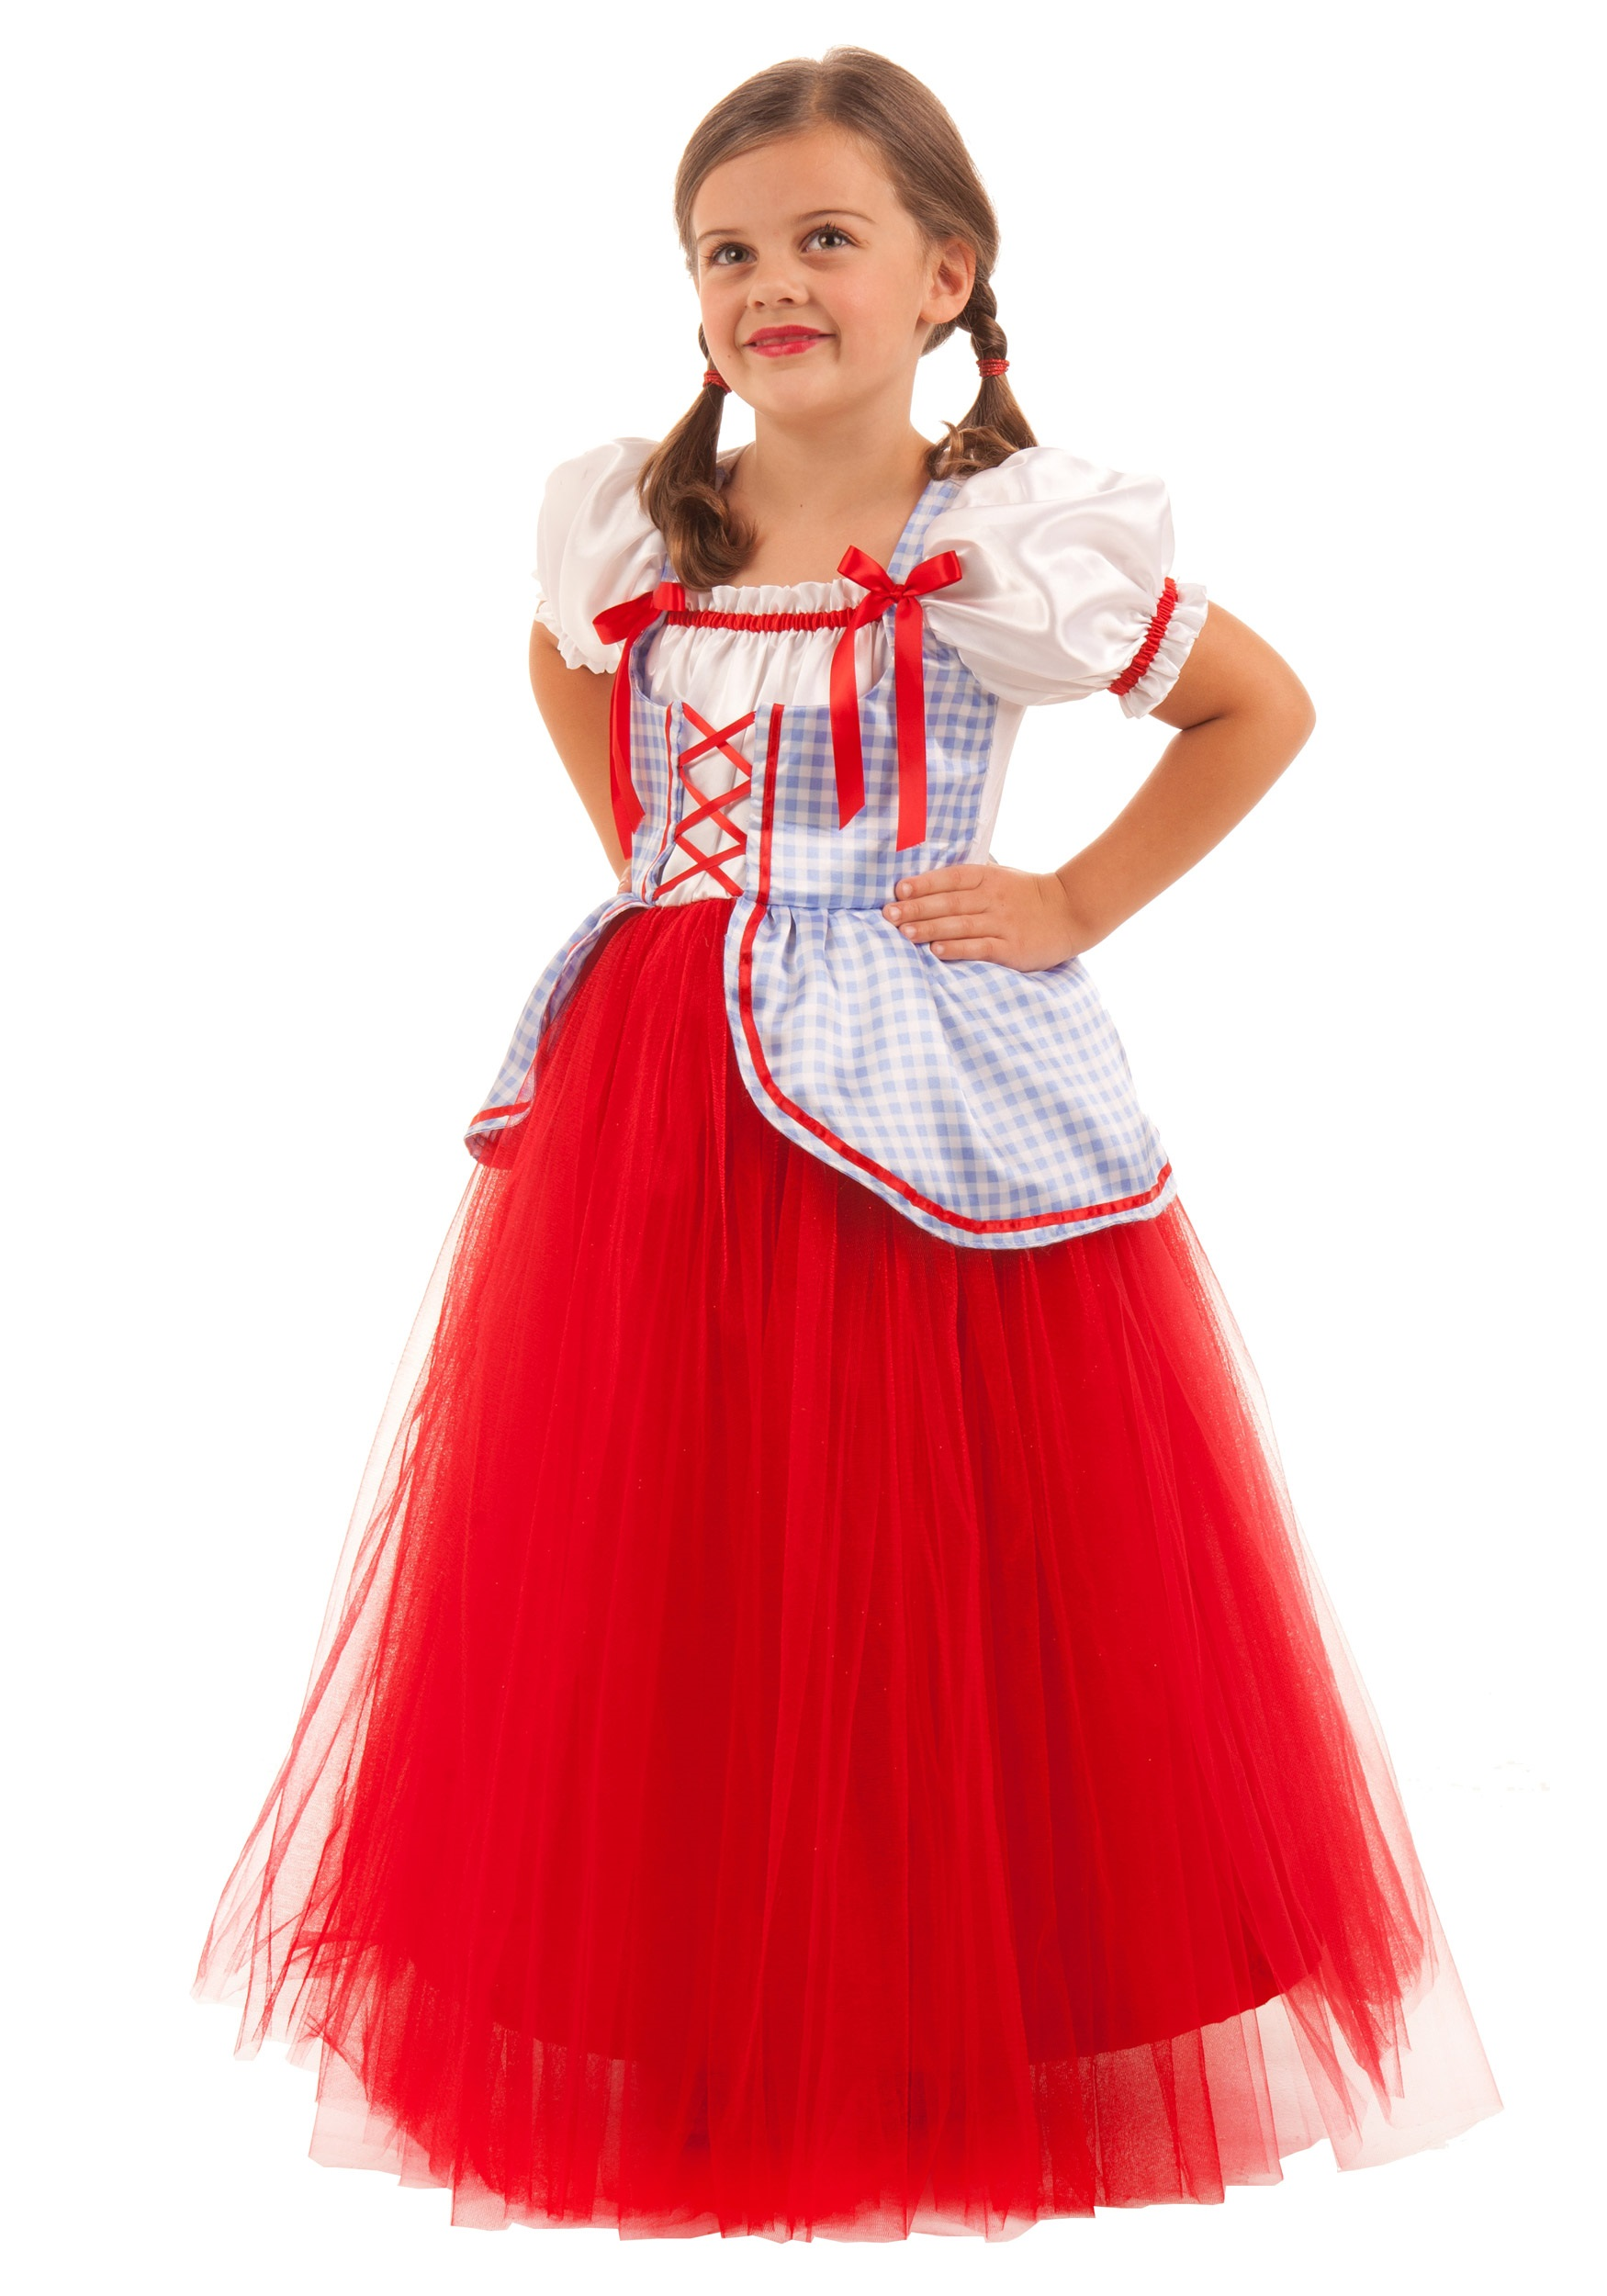 dorothy princess costume - halloween costumes